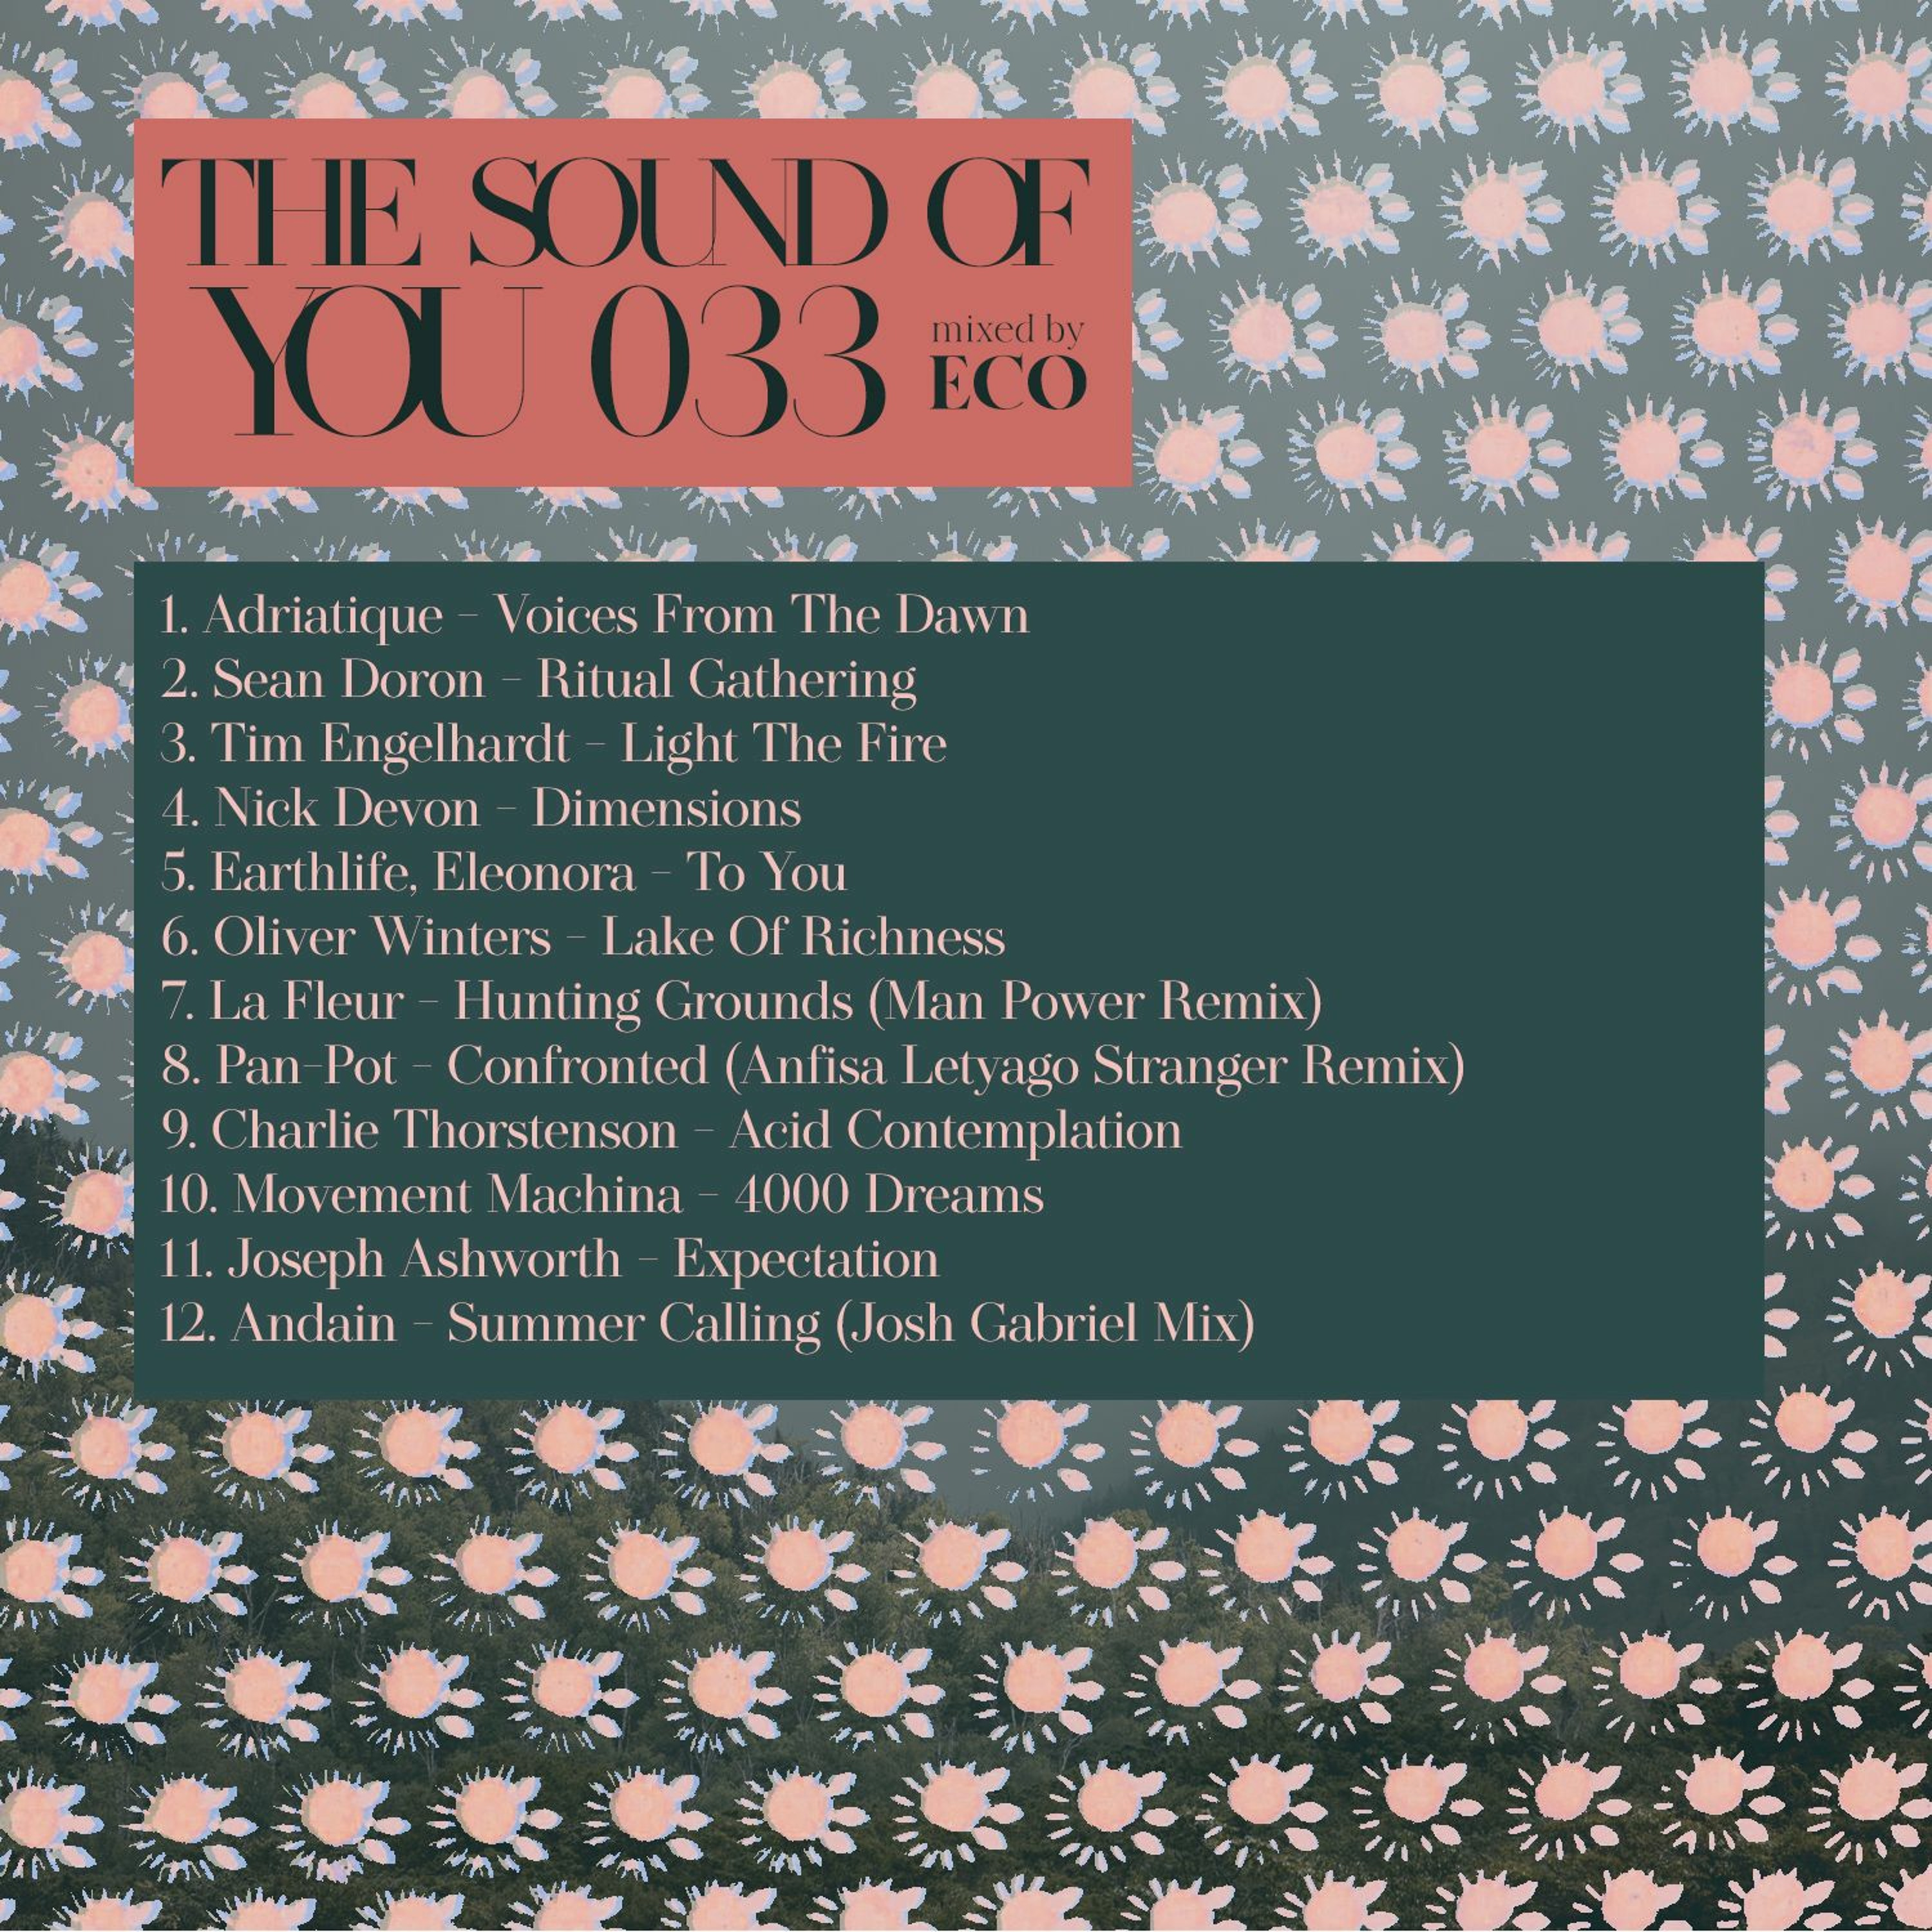 The Sound of You 033